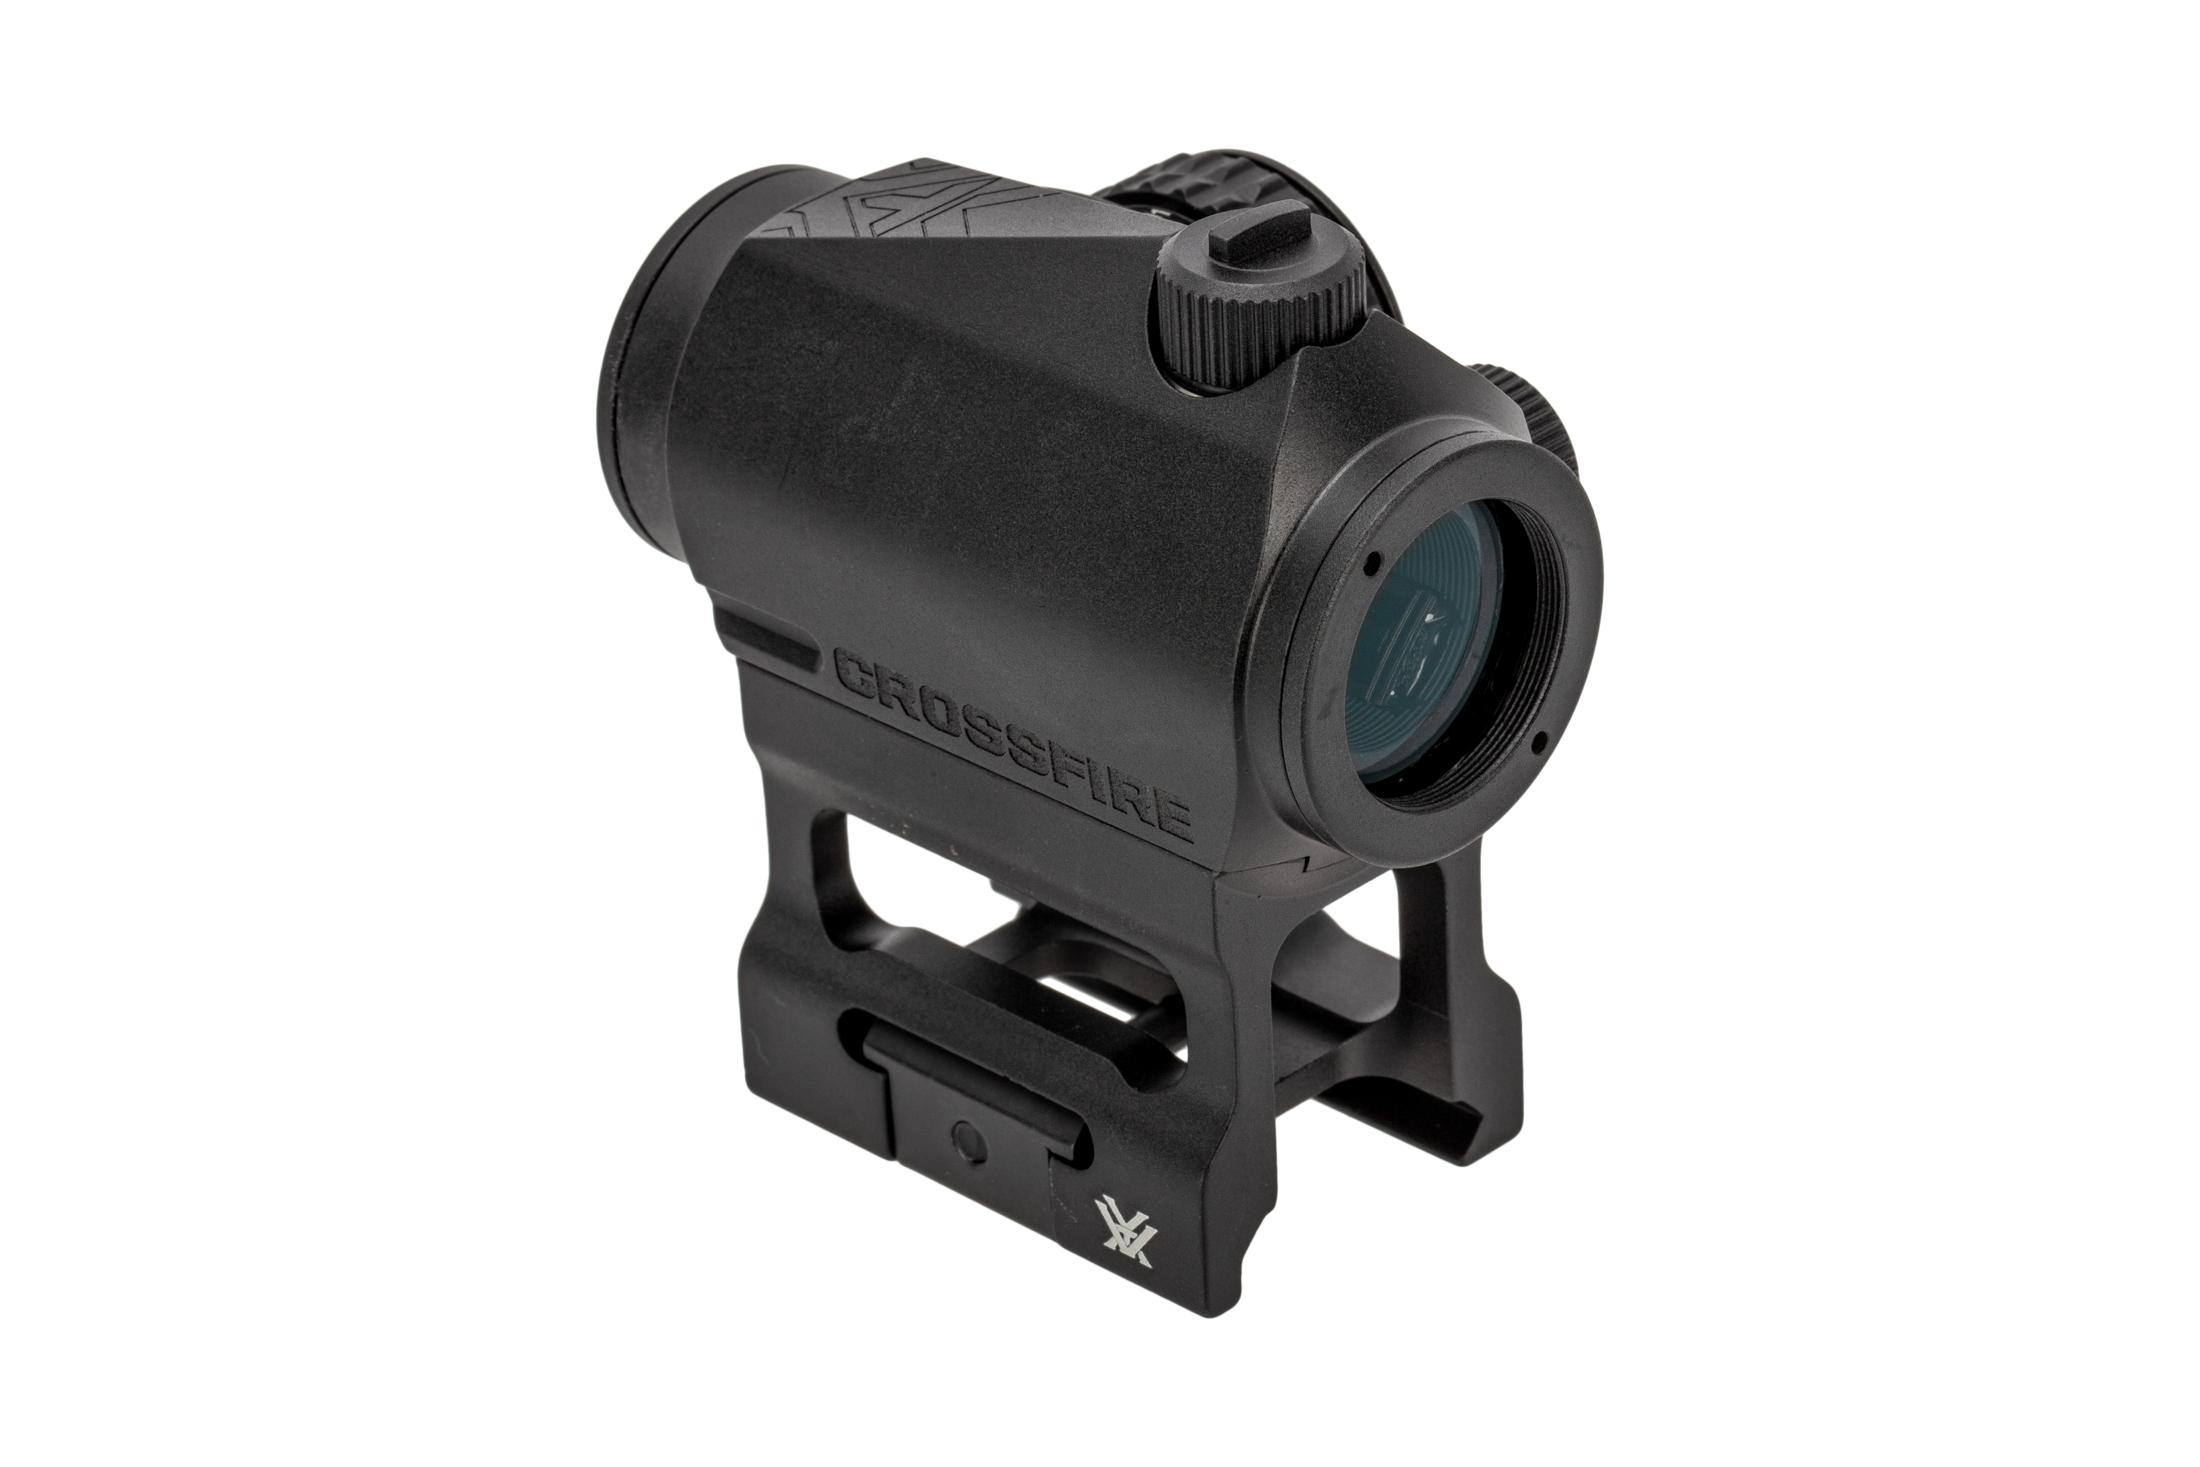 Vortex Optics Crossfire II 2 MOA red dot sight for the AR 15 with skeletonized mount.